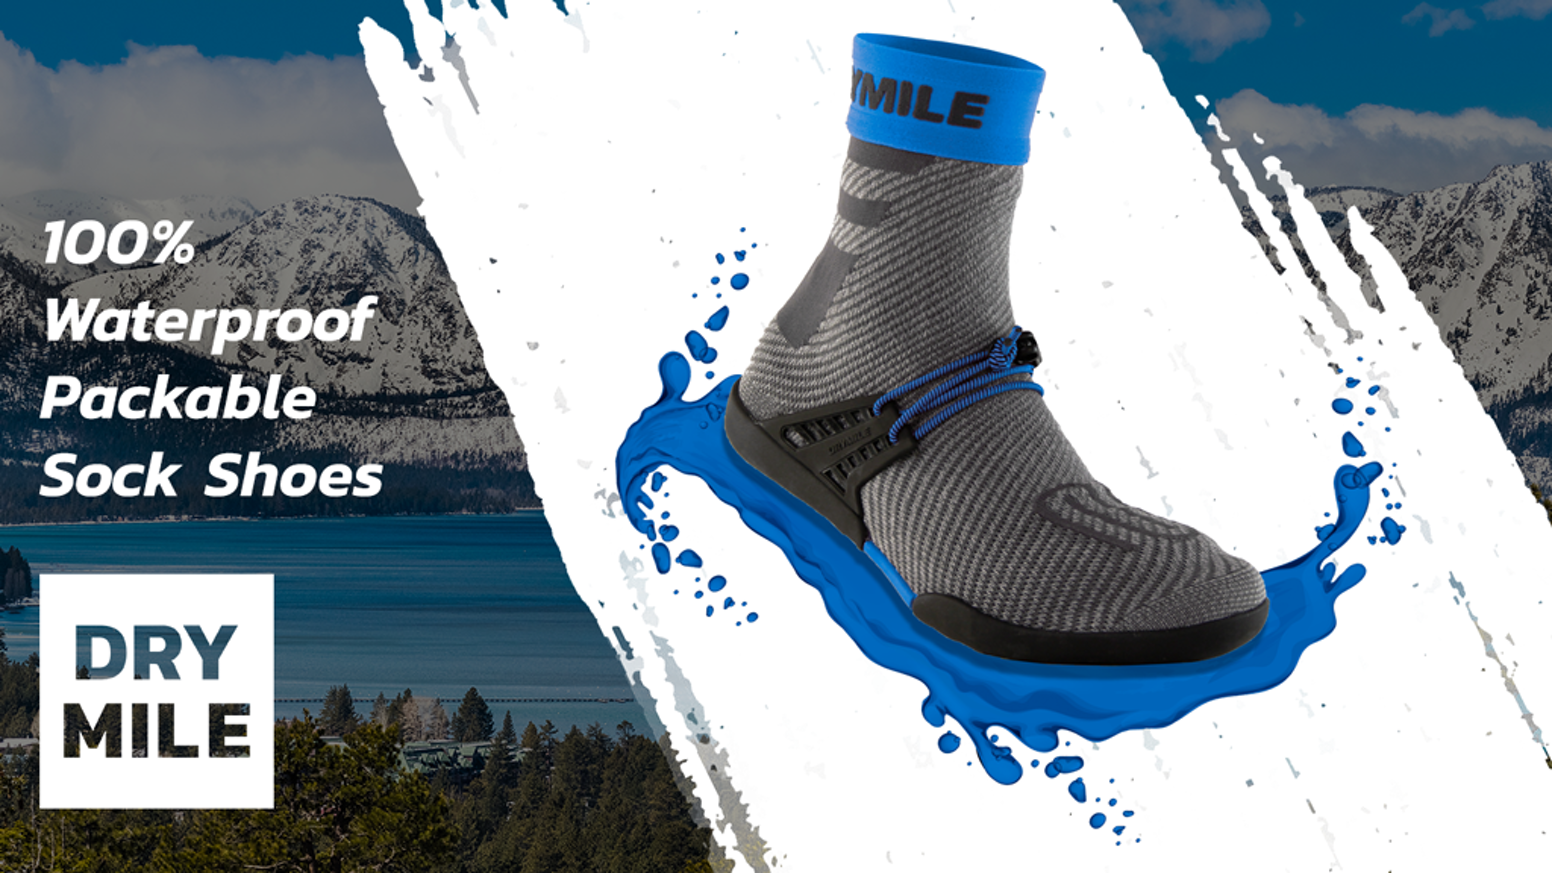 Flexible, comfortable, and waterproof slip-on shoes with amazing grip. With DRYMILE, you're ready for any weather, and any terrain.